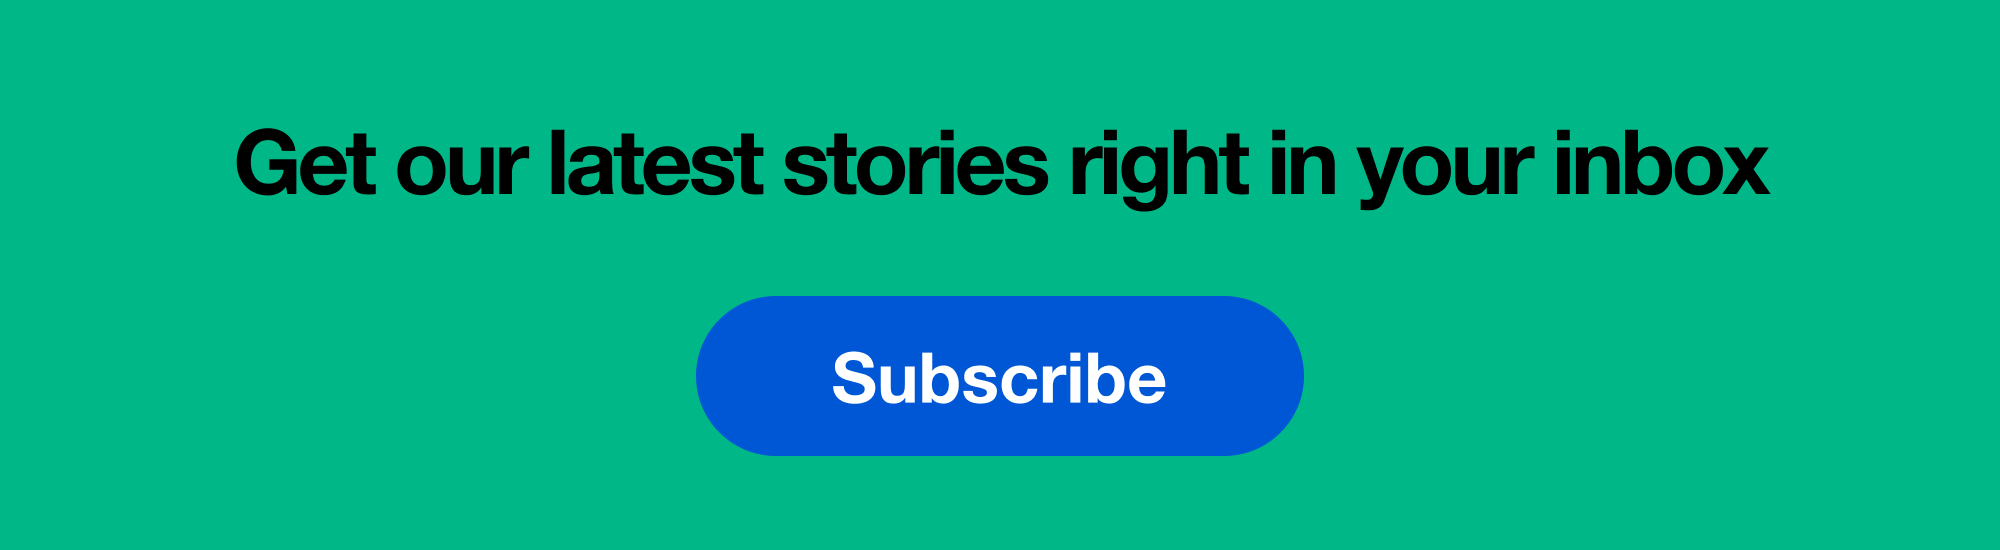 Advertisement Subscribe to our email newsletter to get our latest stories right in your inbox